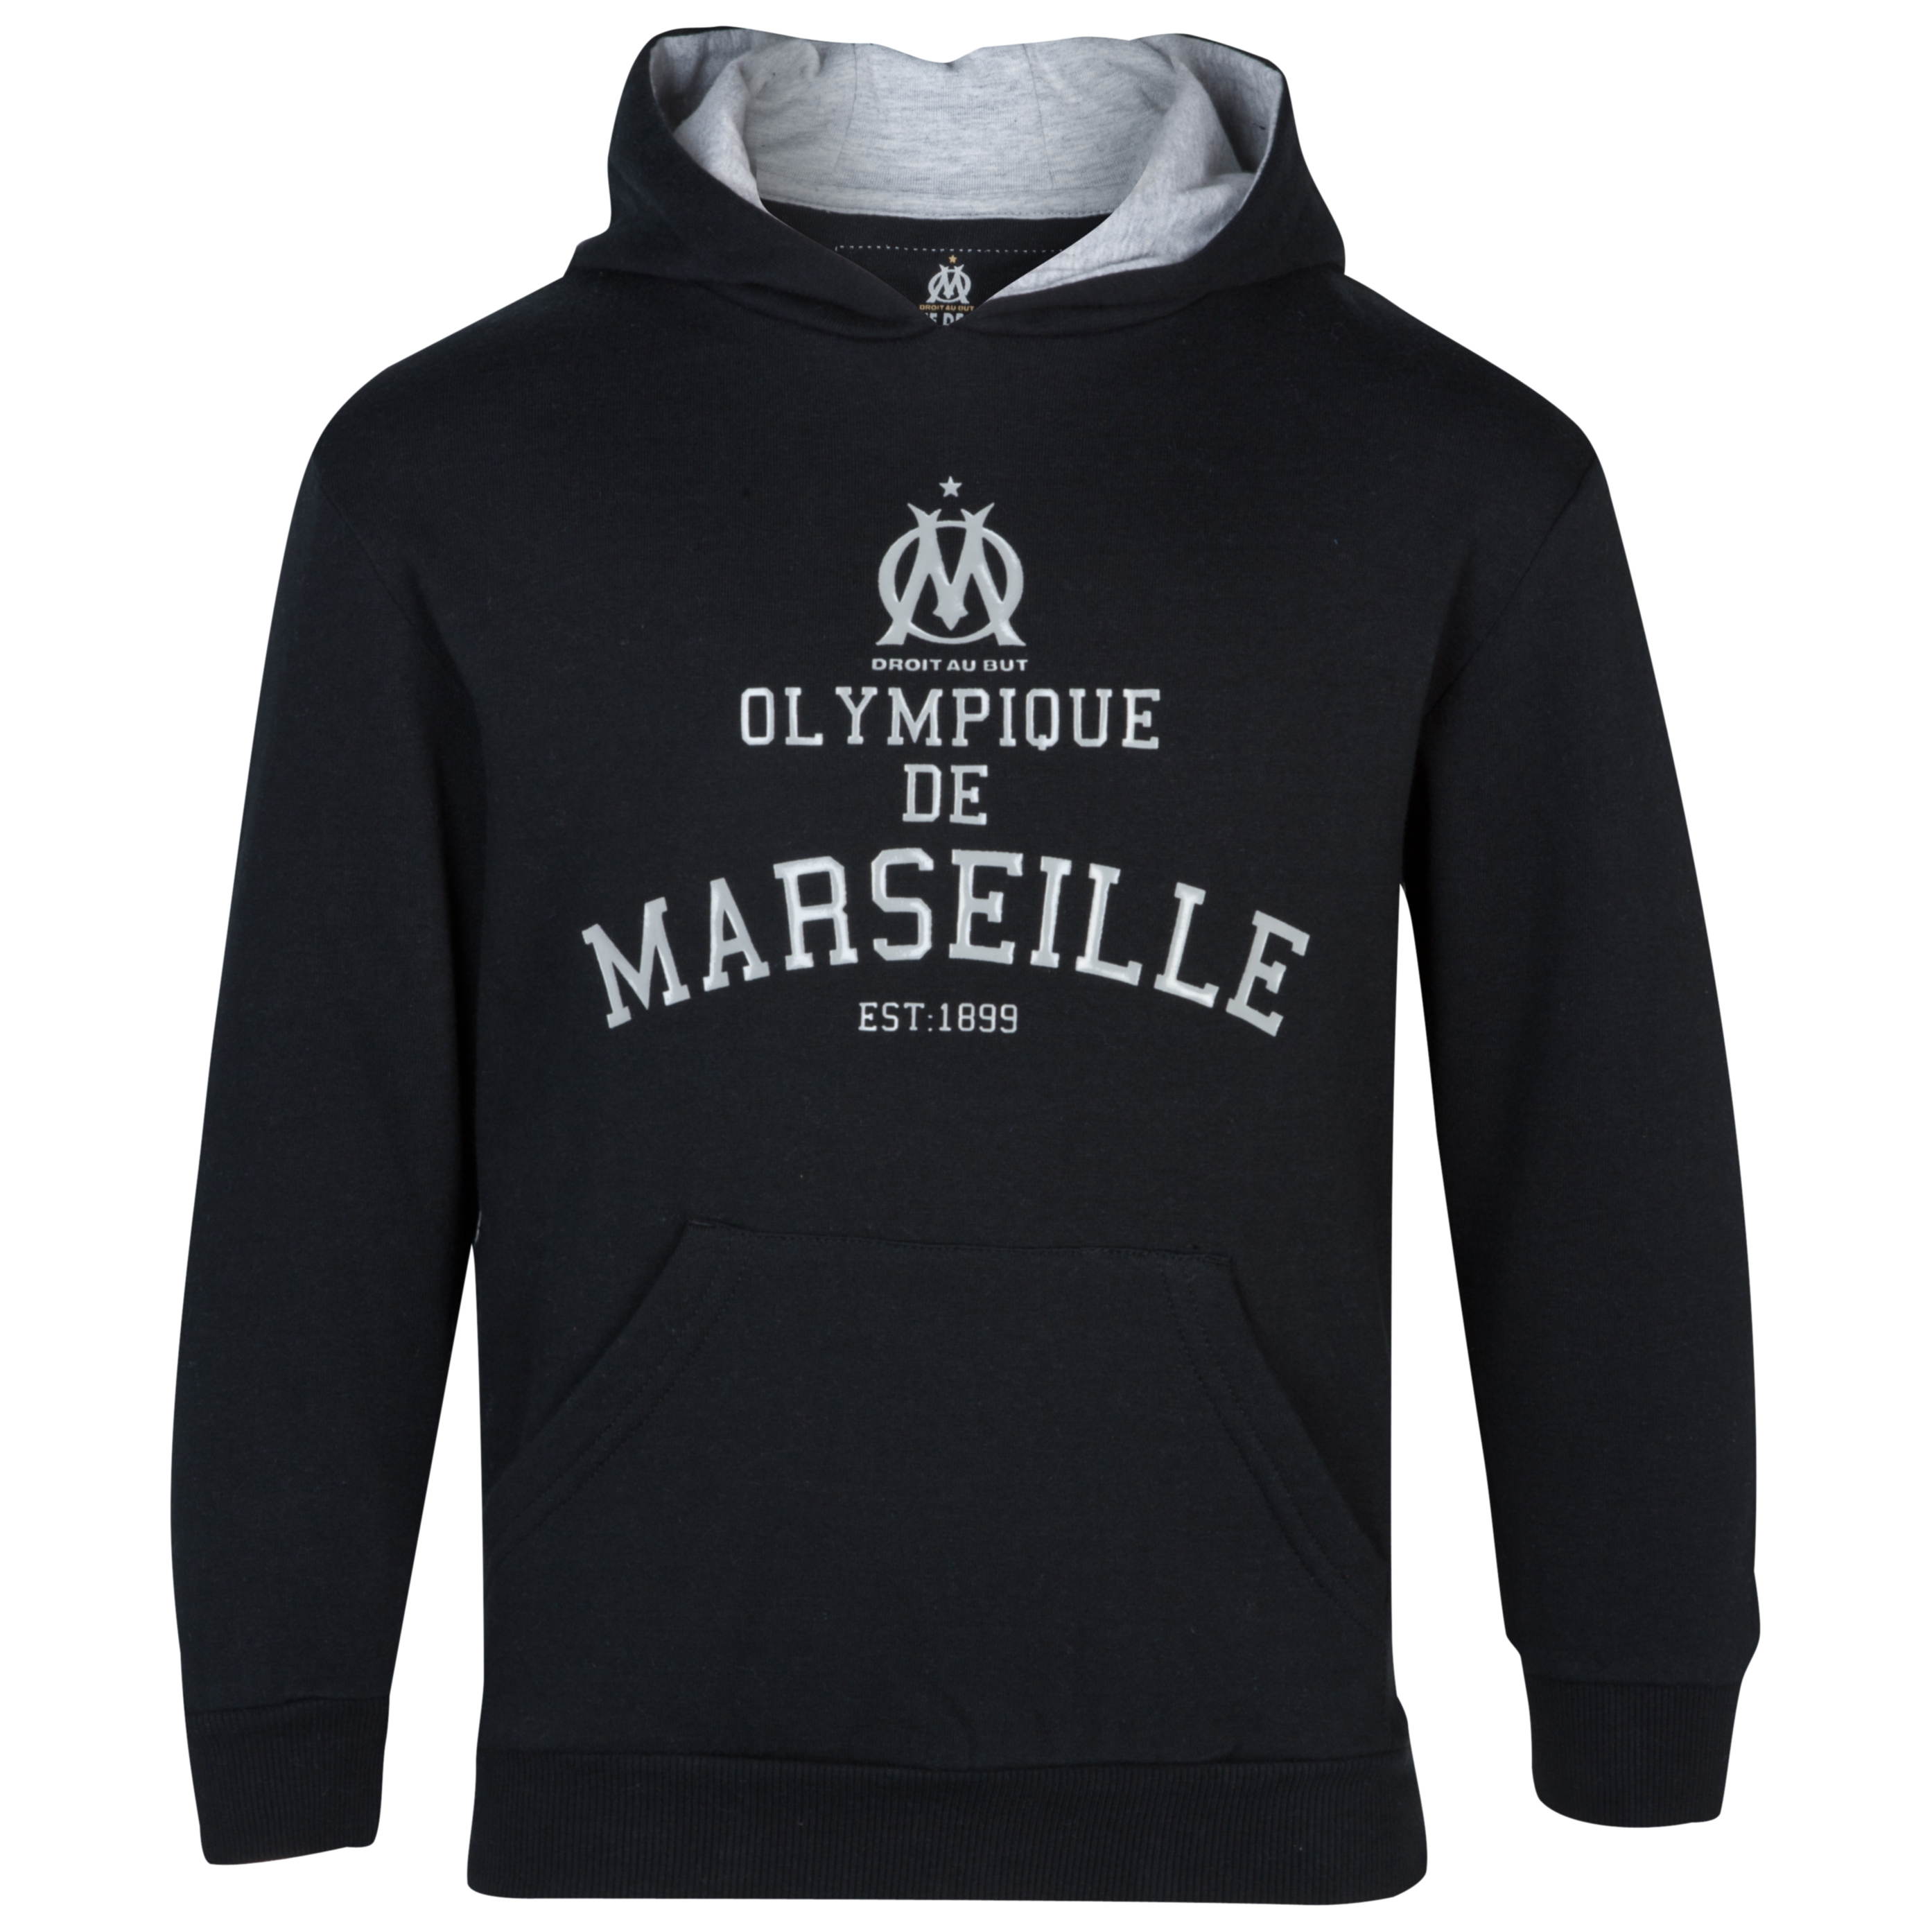 Olympique de Marseille Athletic Club Hoodie - Black/Grey - Junior